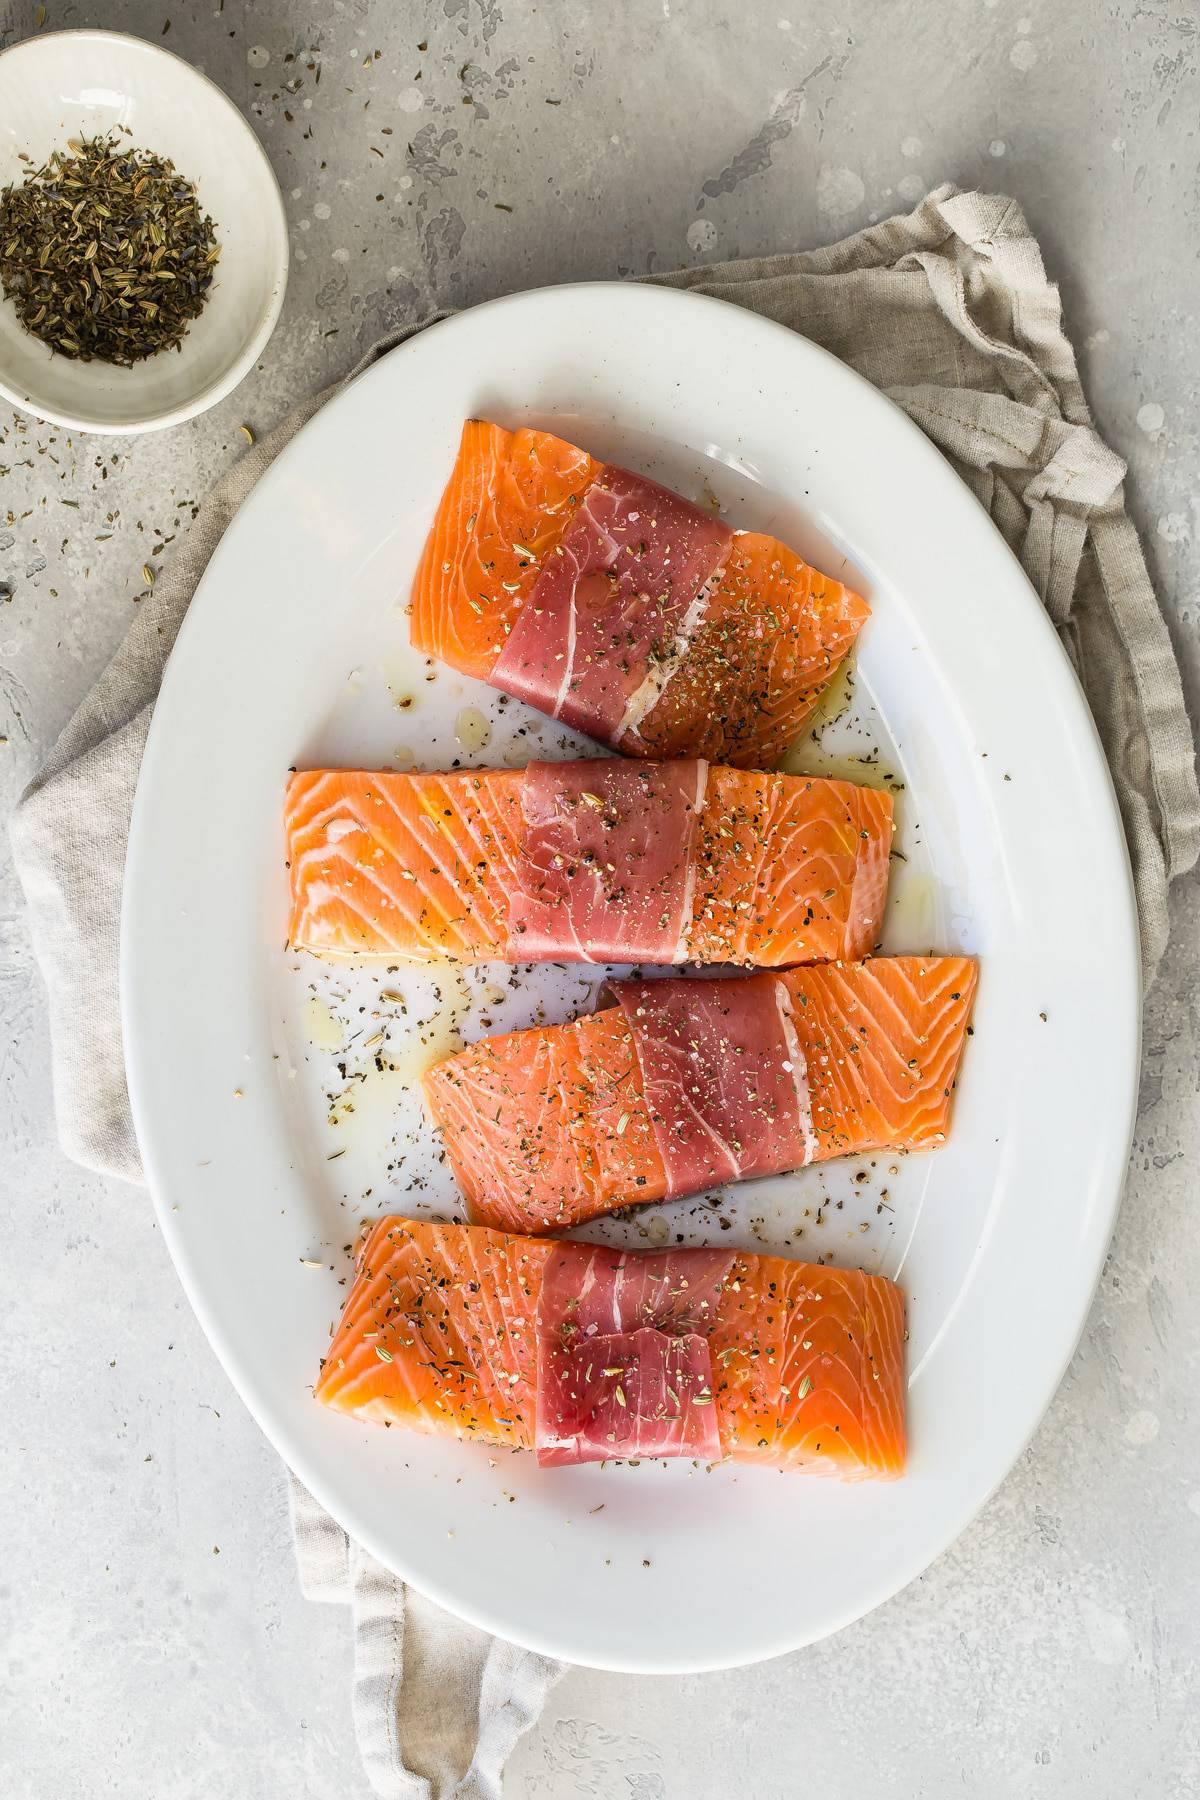 raw salmon on a plate ready to roast